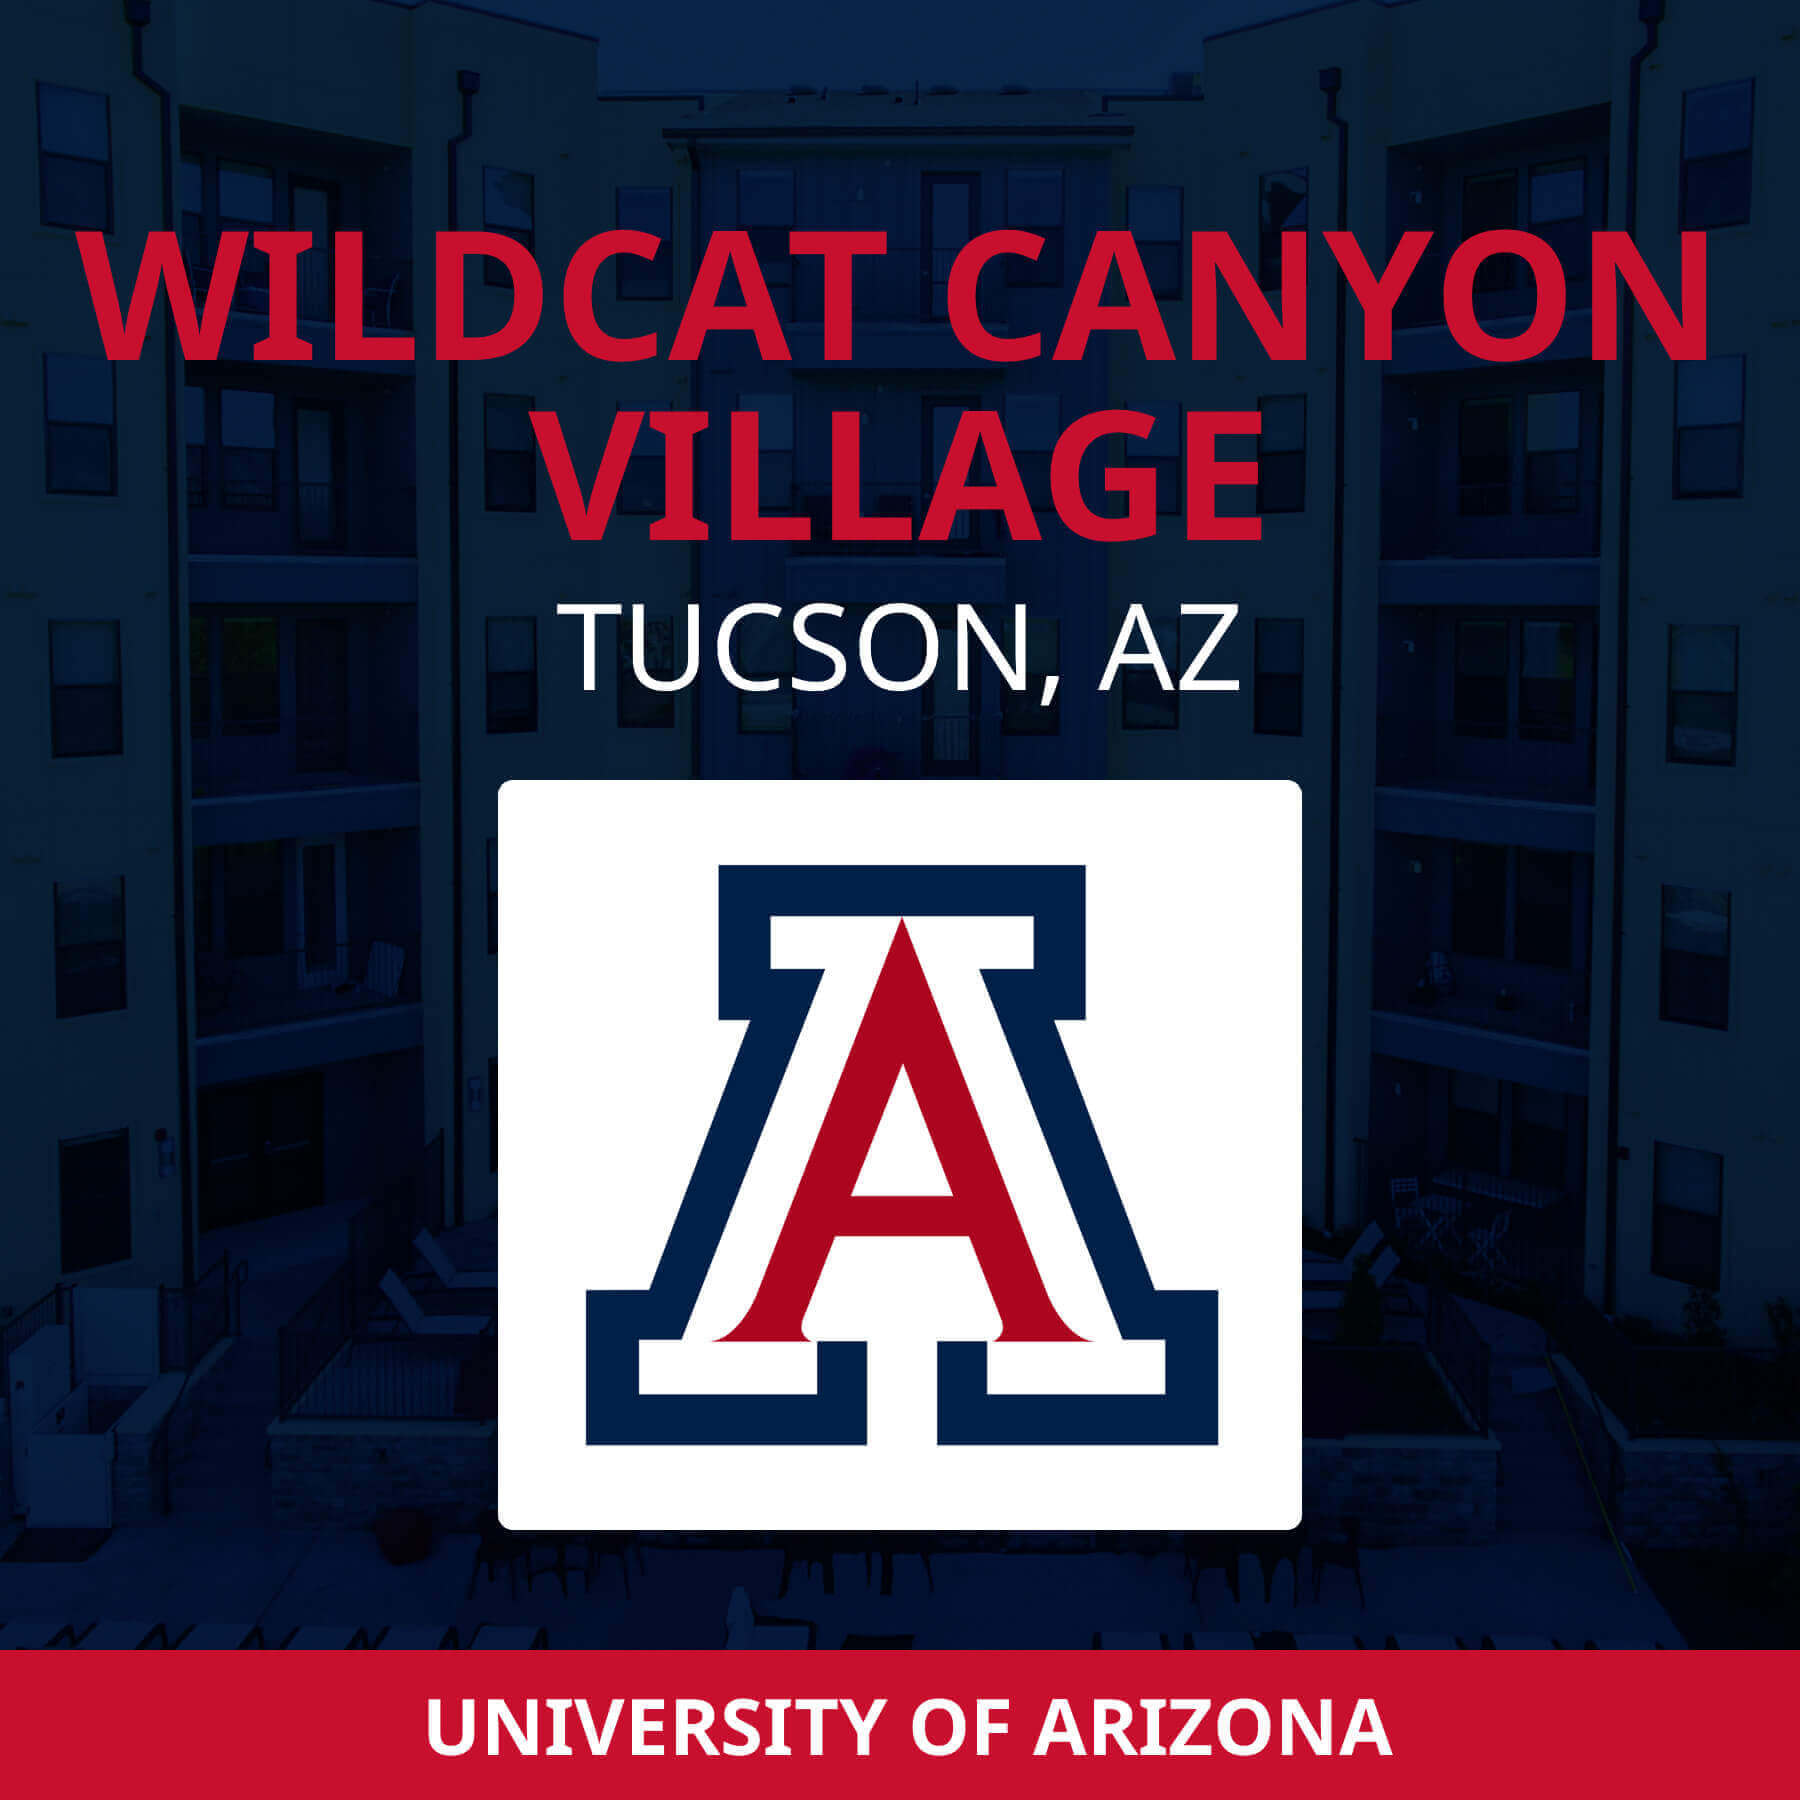 Wildcat-Student-Housing-Property-Tucson-Arizona